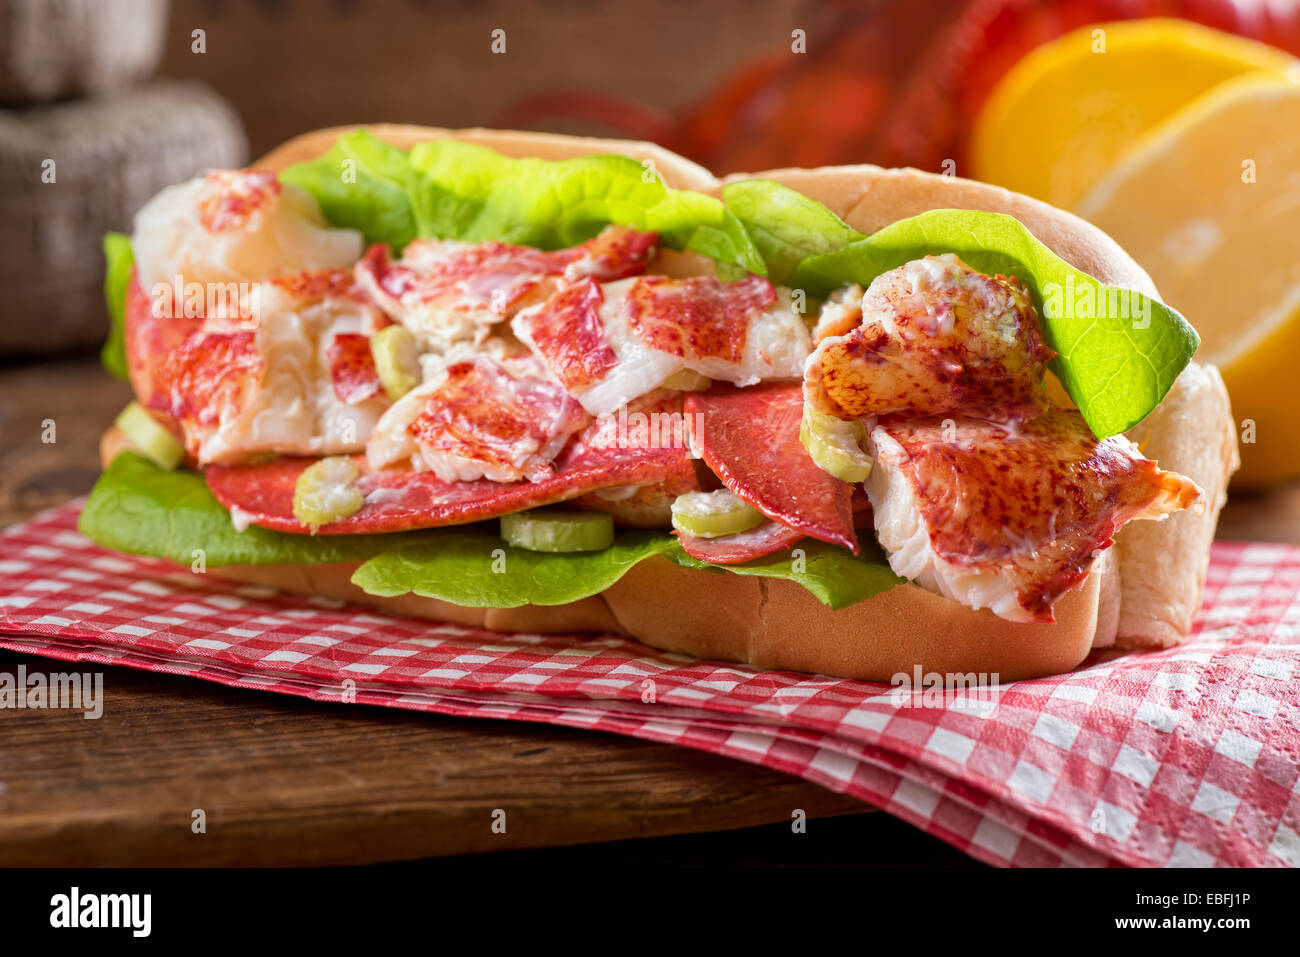 A delicious freshly made lobster roll with lobster, lemon, celery, and mayonnaise. - Stock Image